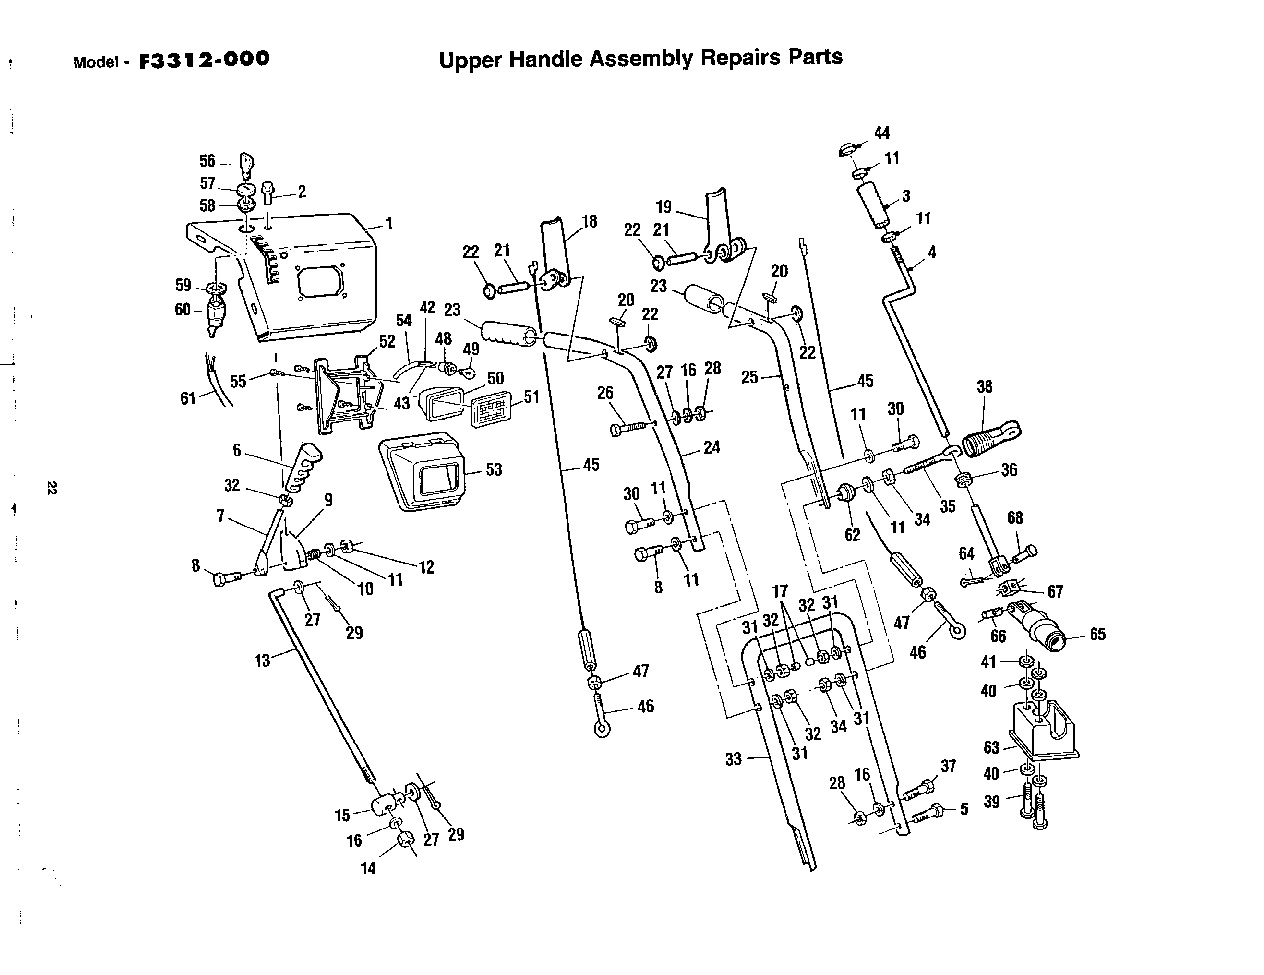 engine missing from noma 1232 snowblower is it possible to find out original engine model and